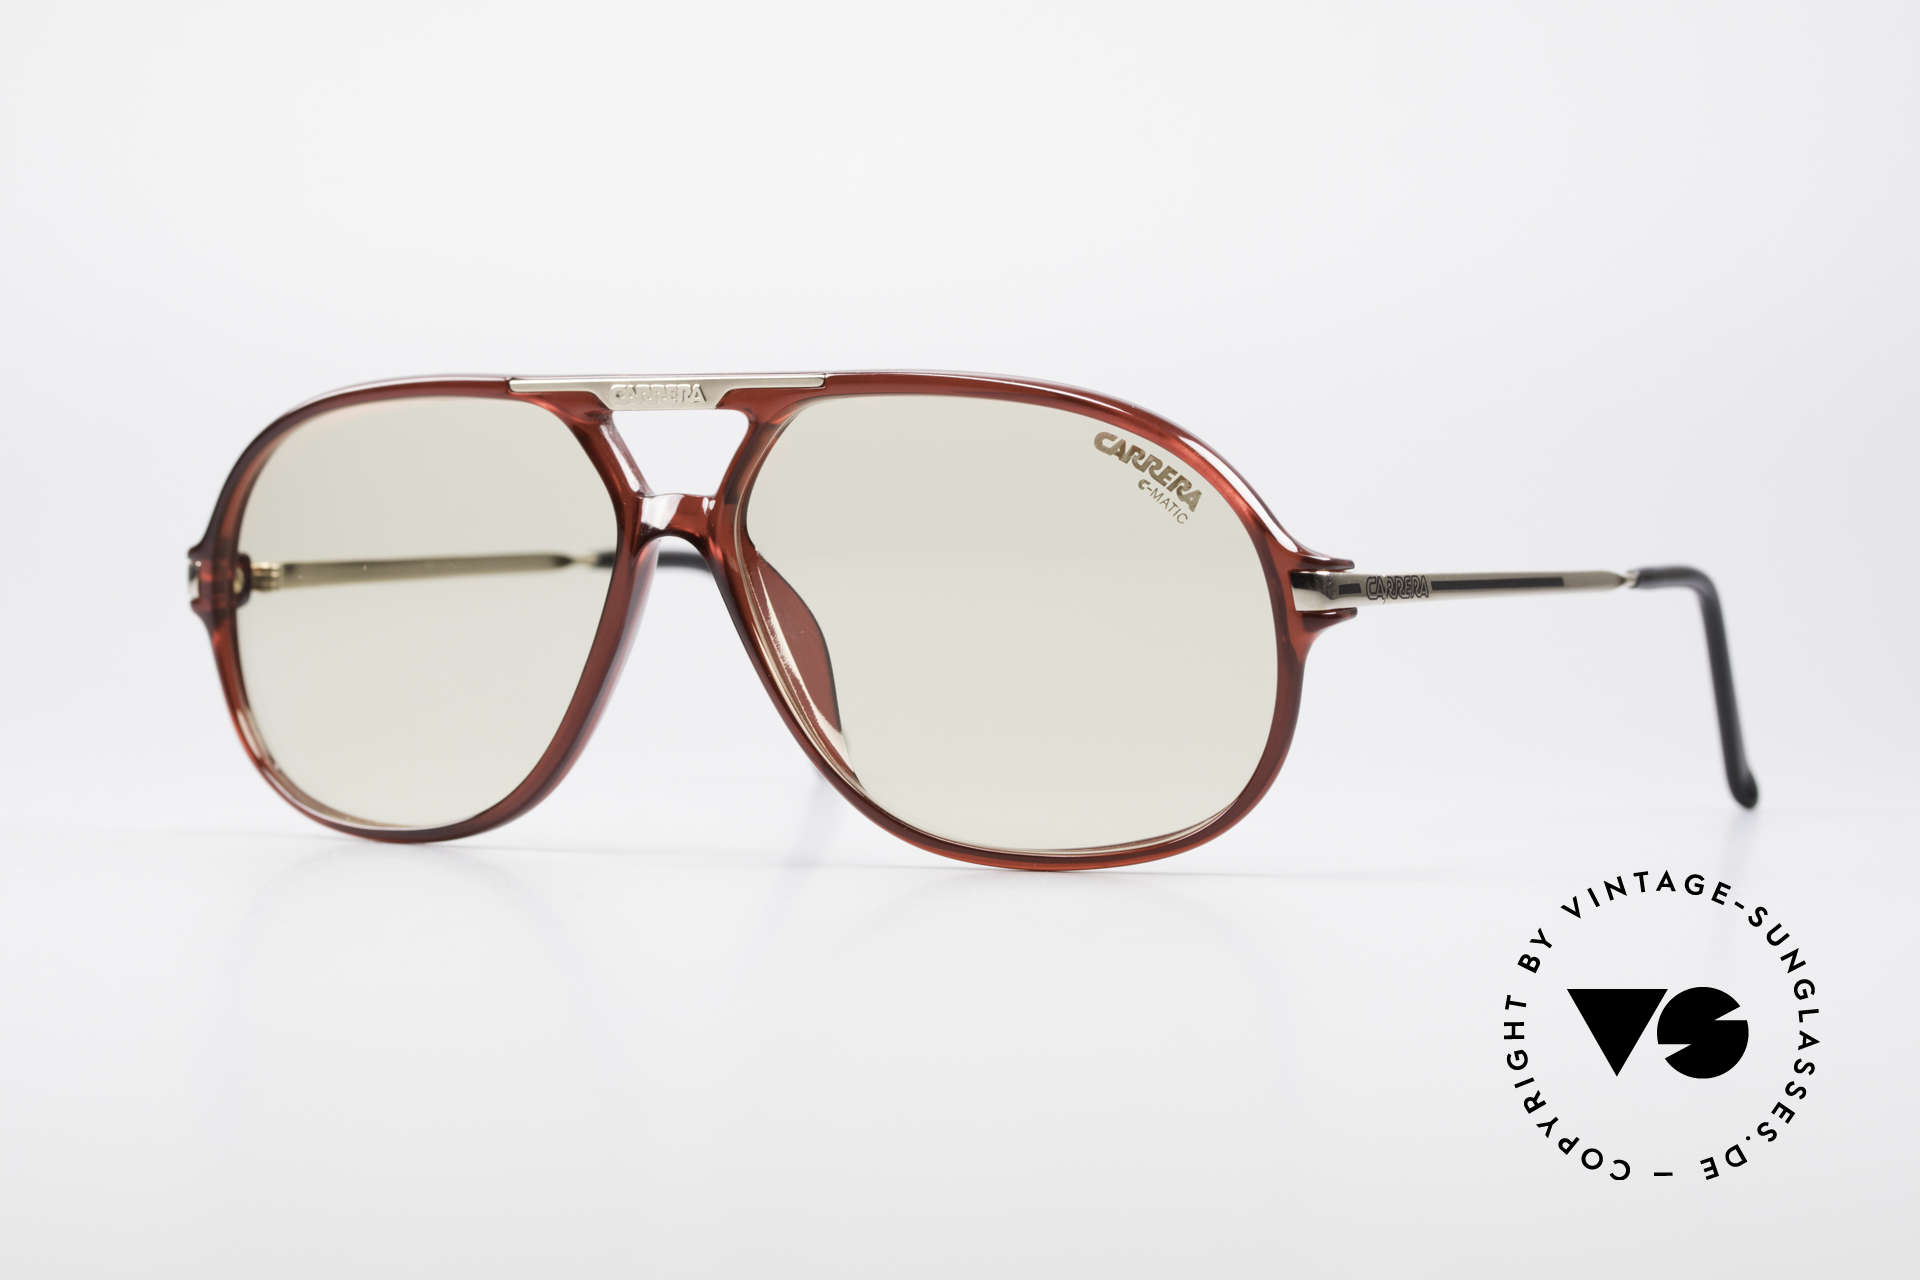 Carrera 5411 C-Matic Extra Changeable Sun Lenses, original Carrera 5411 'Ocean' sunglasses from 1989, Made for Men